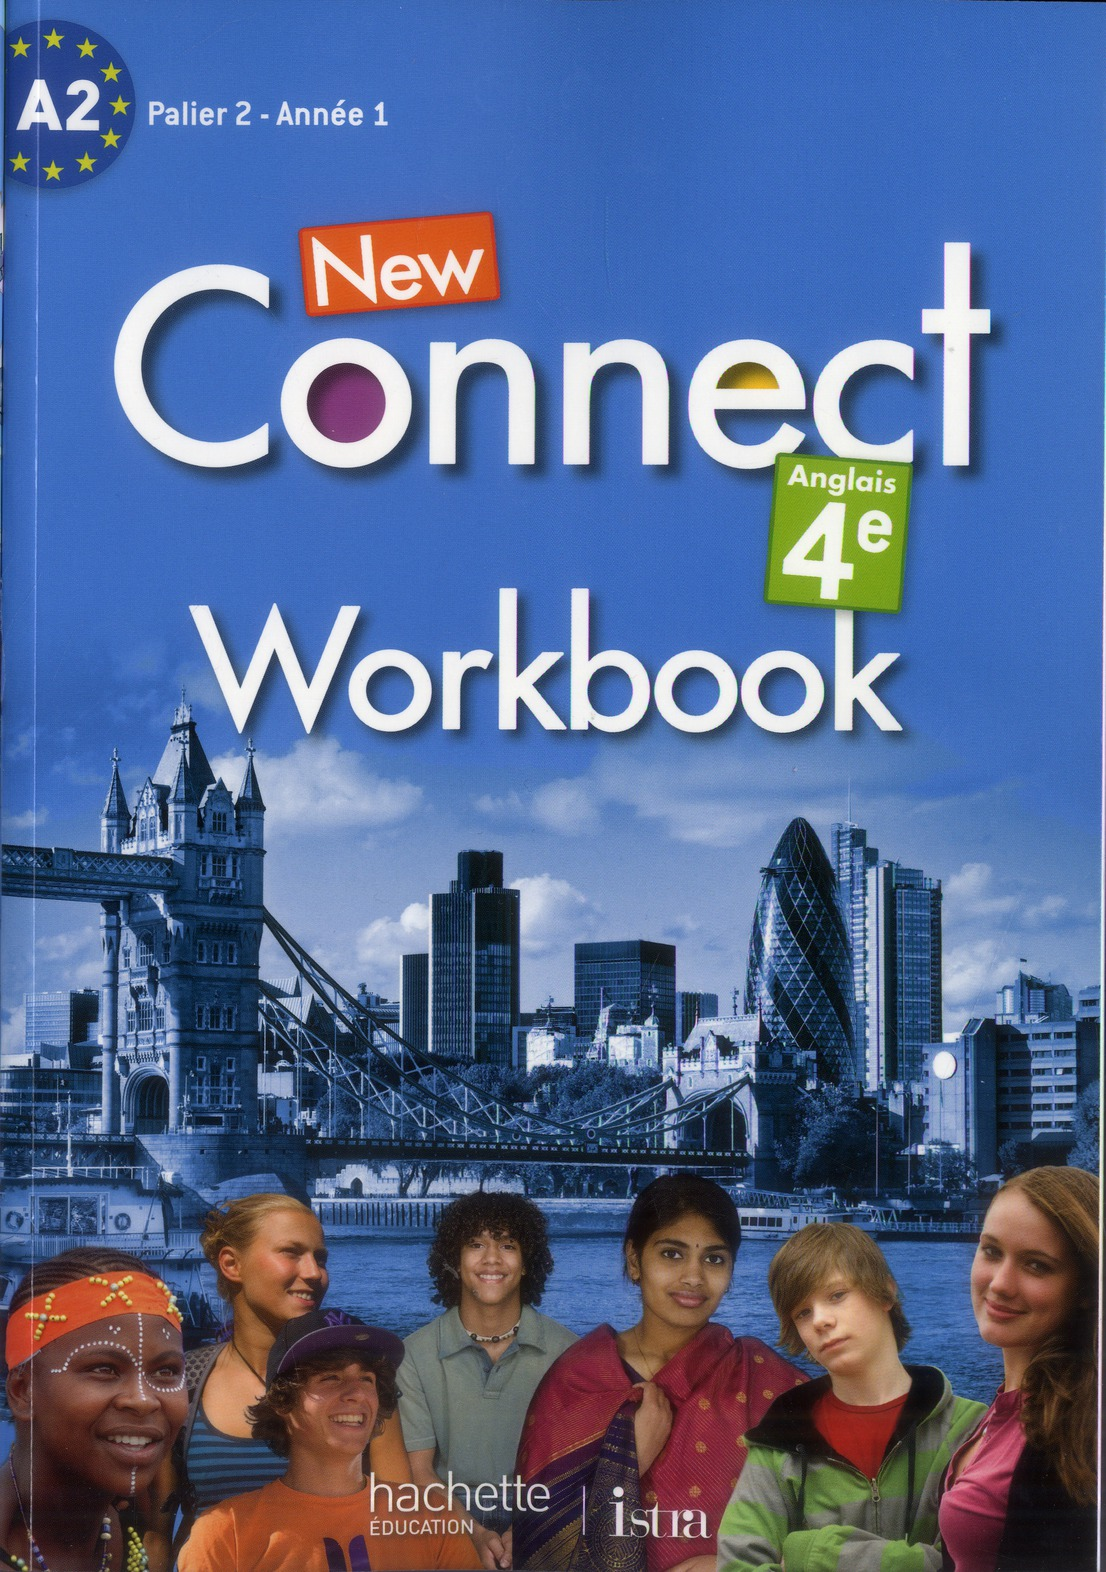 New Connect; Anglais ; 4eme ; Annee 1 Palier 2 ; Workbook